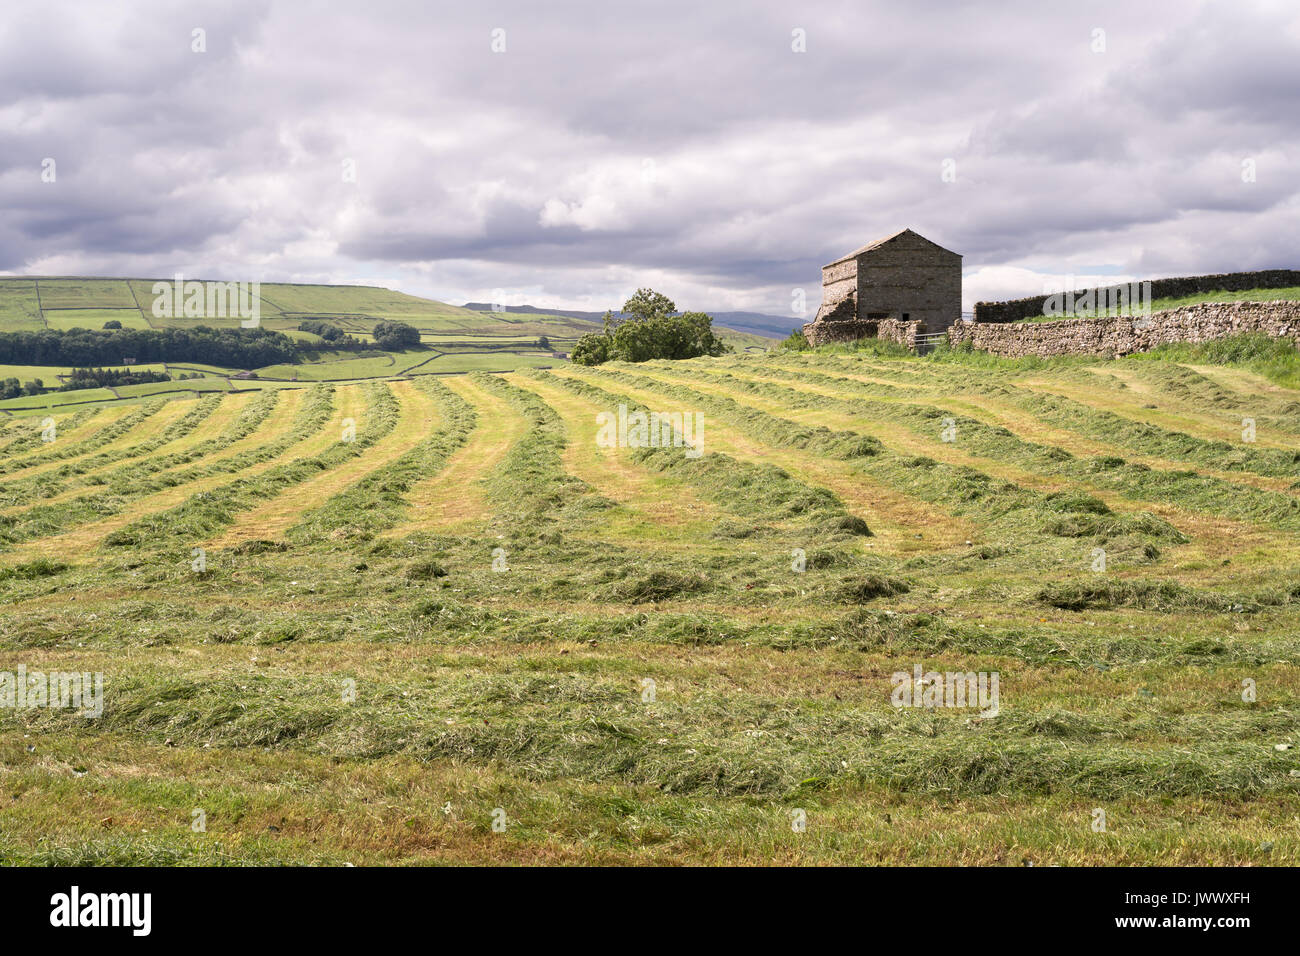 Swathes of grass fodder in field near Askrigg, Wensleydale, Yorkshire, England, UK - Stock Image